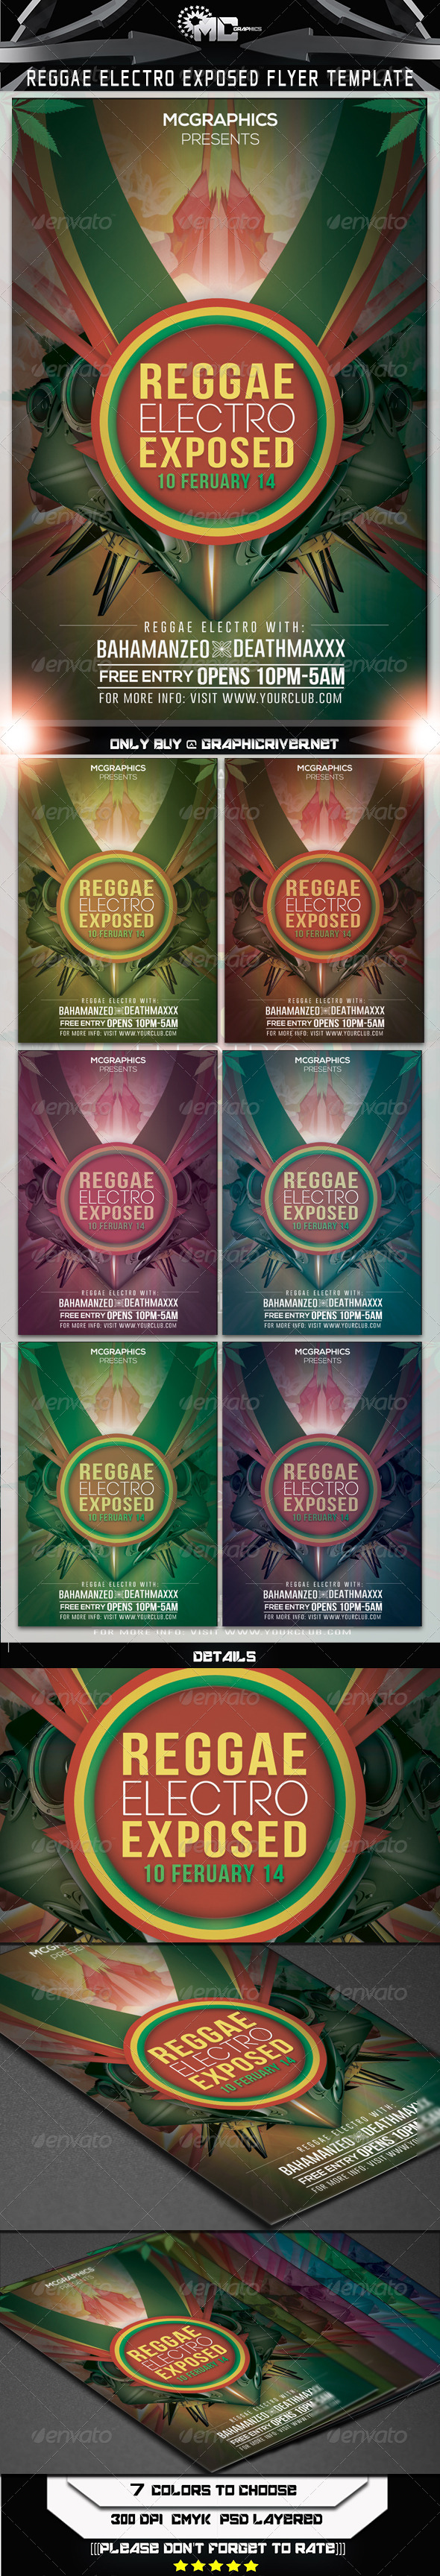 GraphicRiver Reggae Electro Exposed Flyer Template 6536901